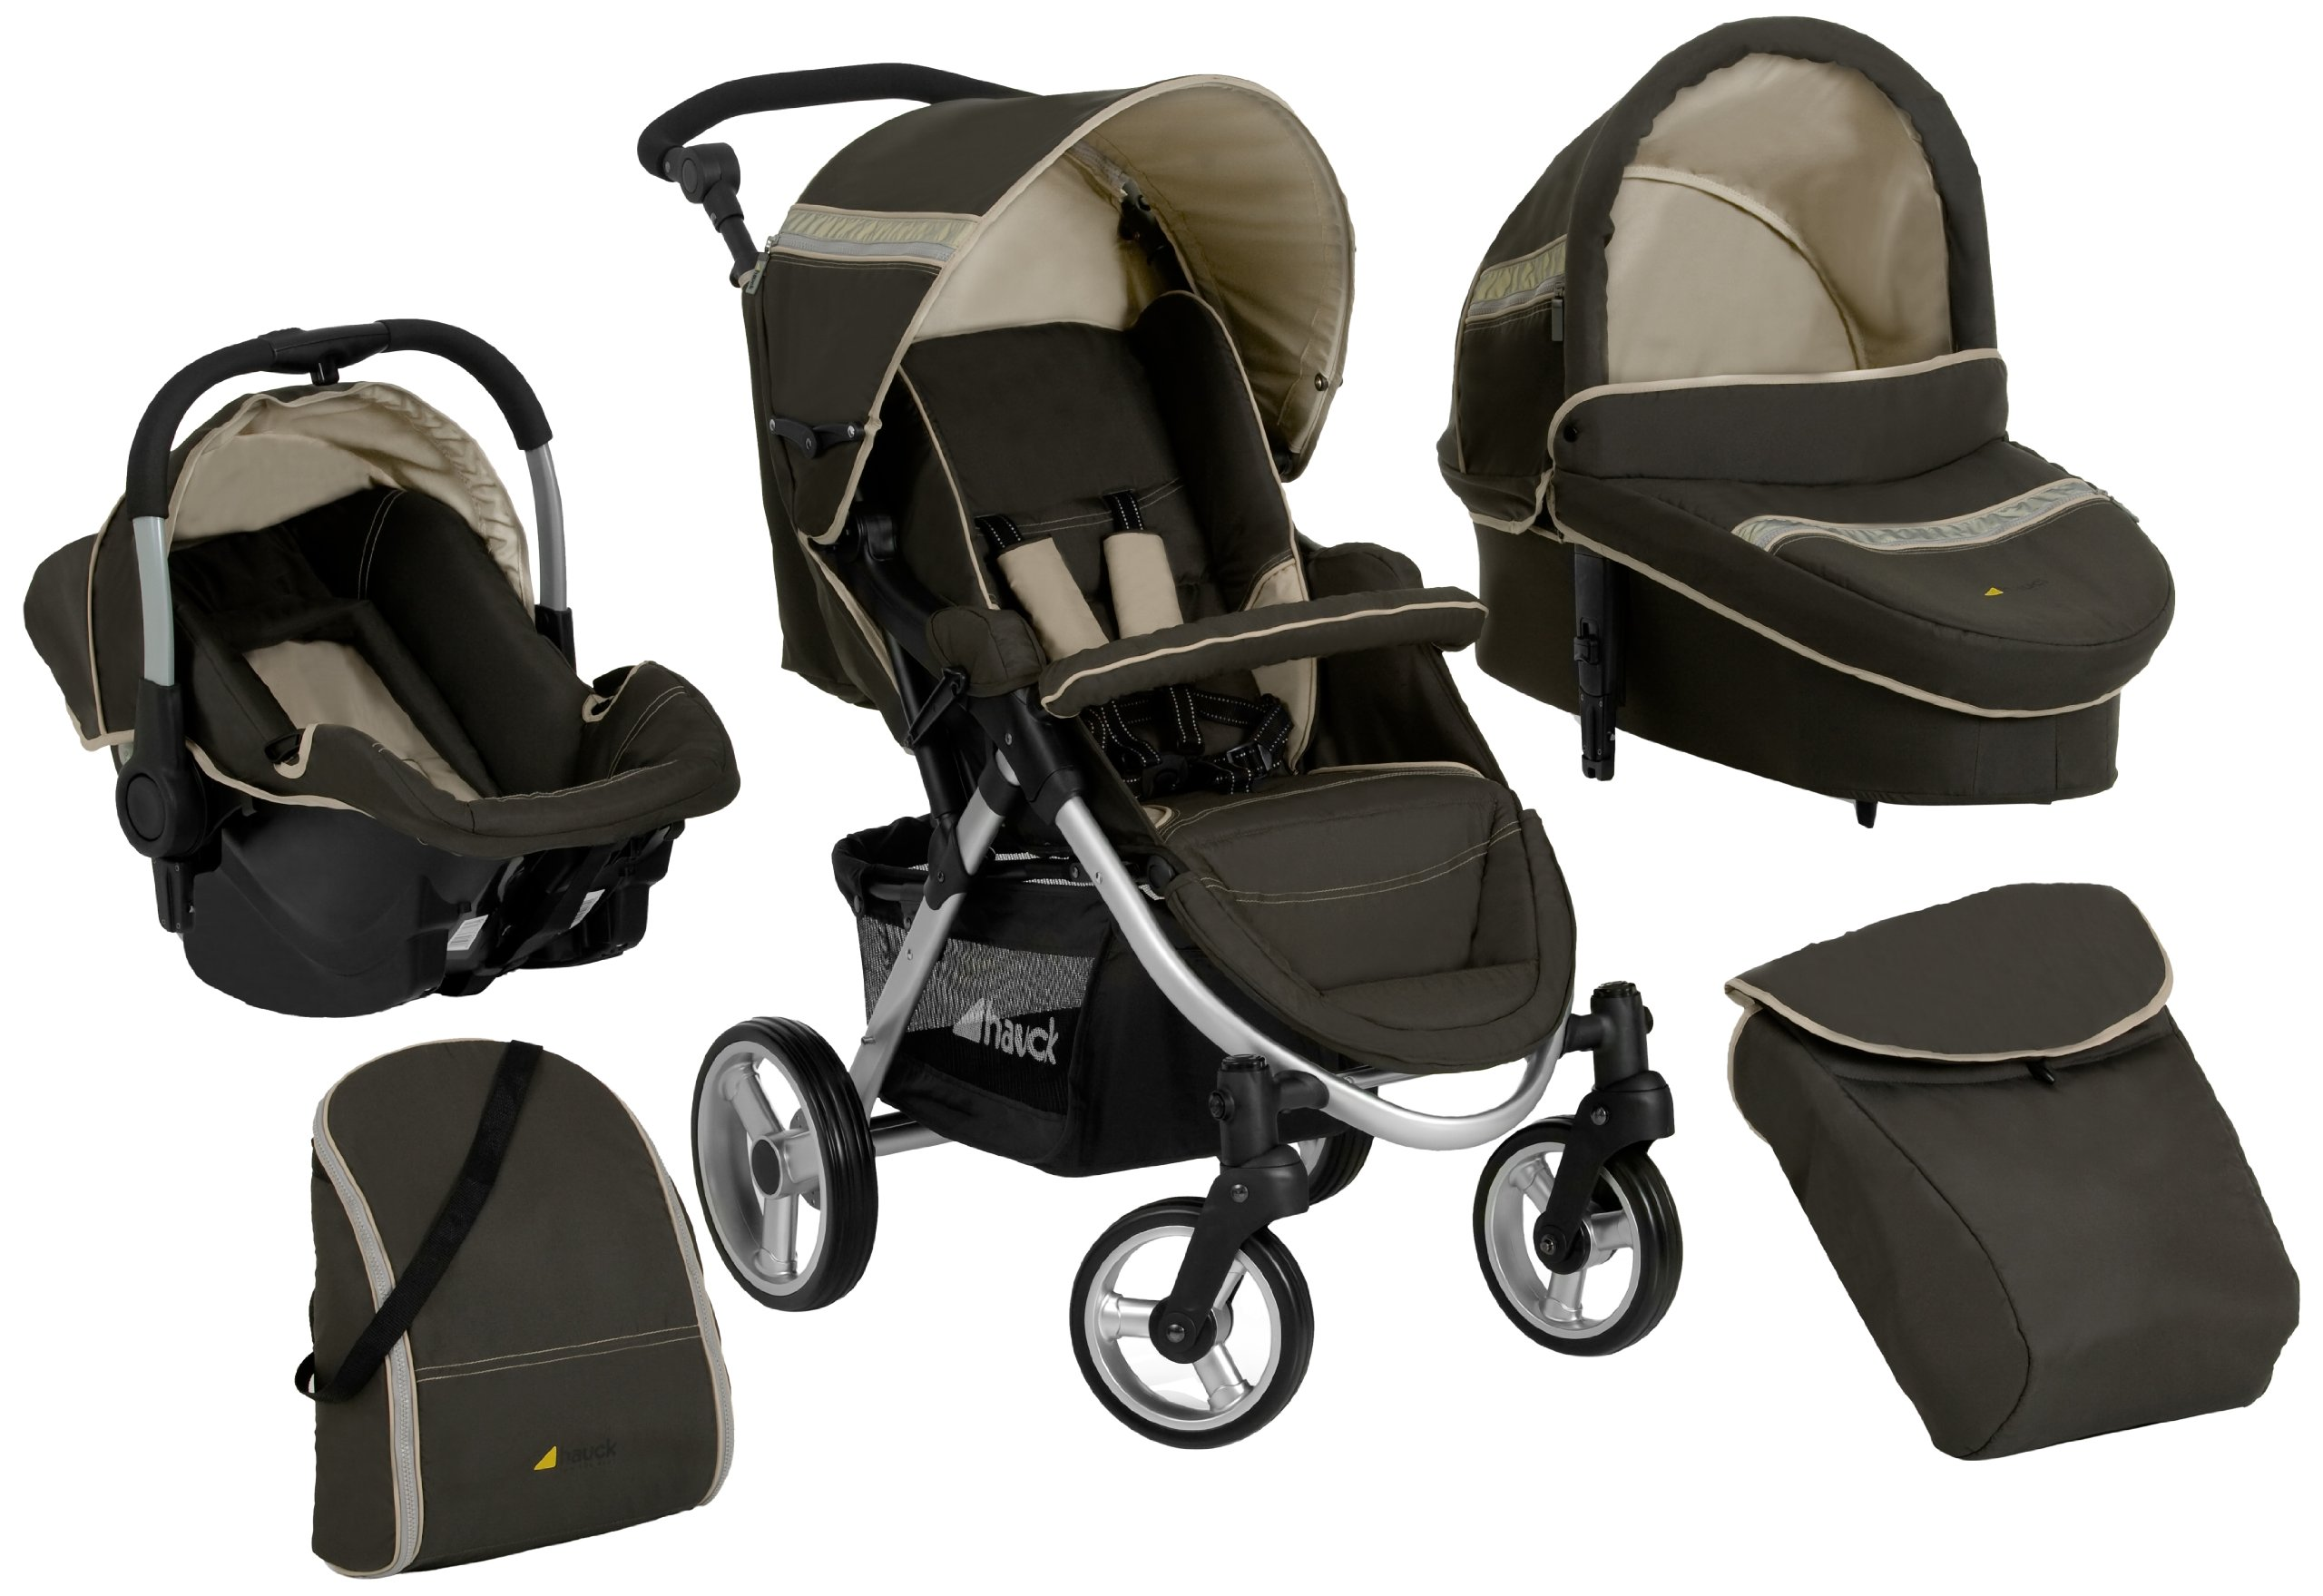 Condor All-in-One Travel System